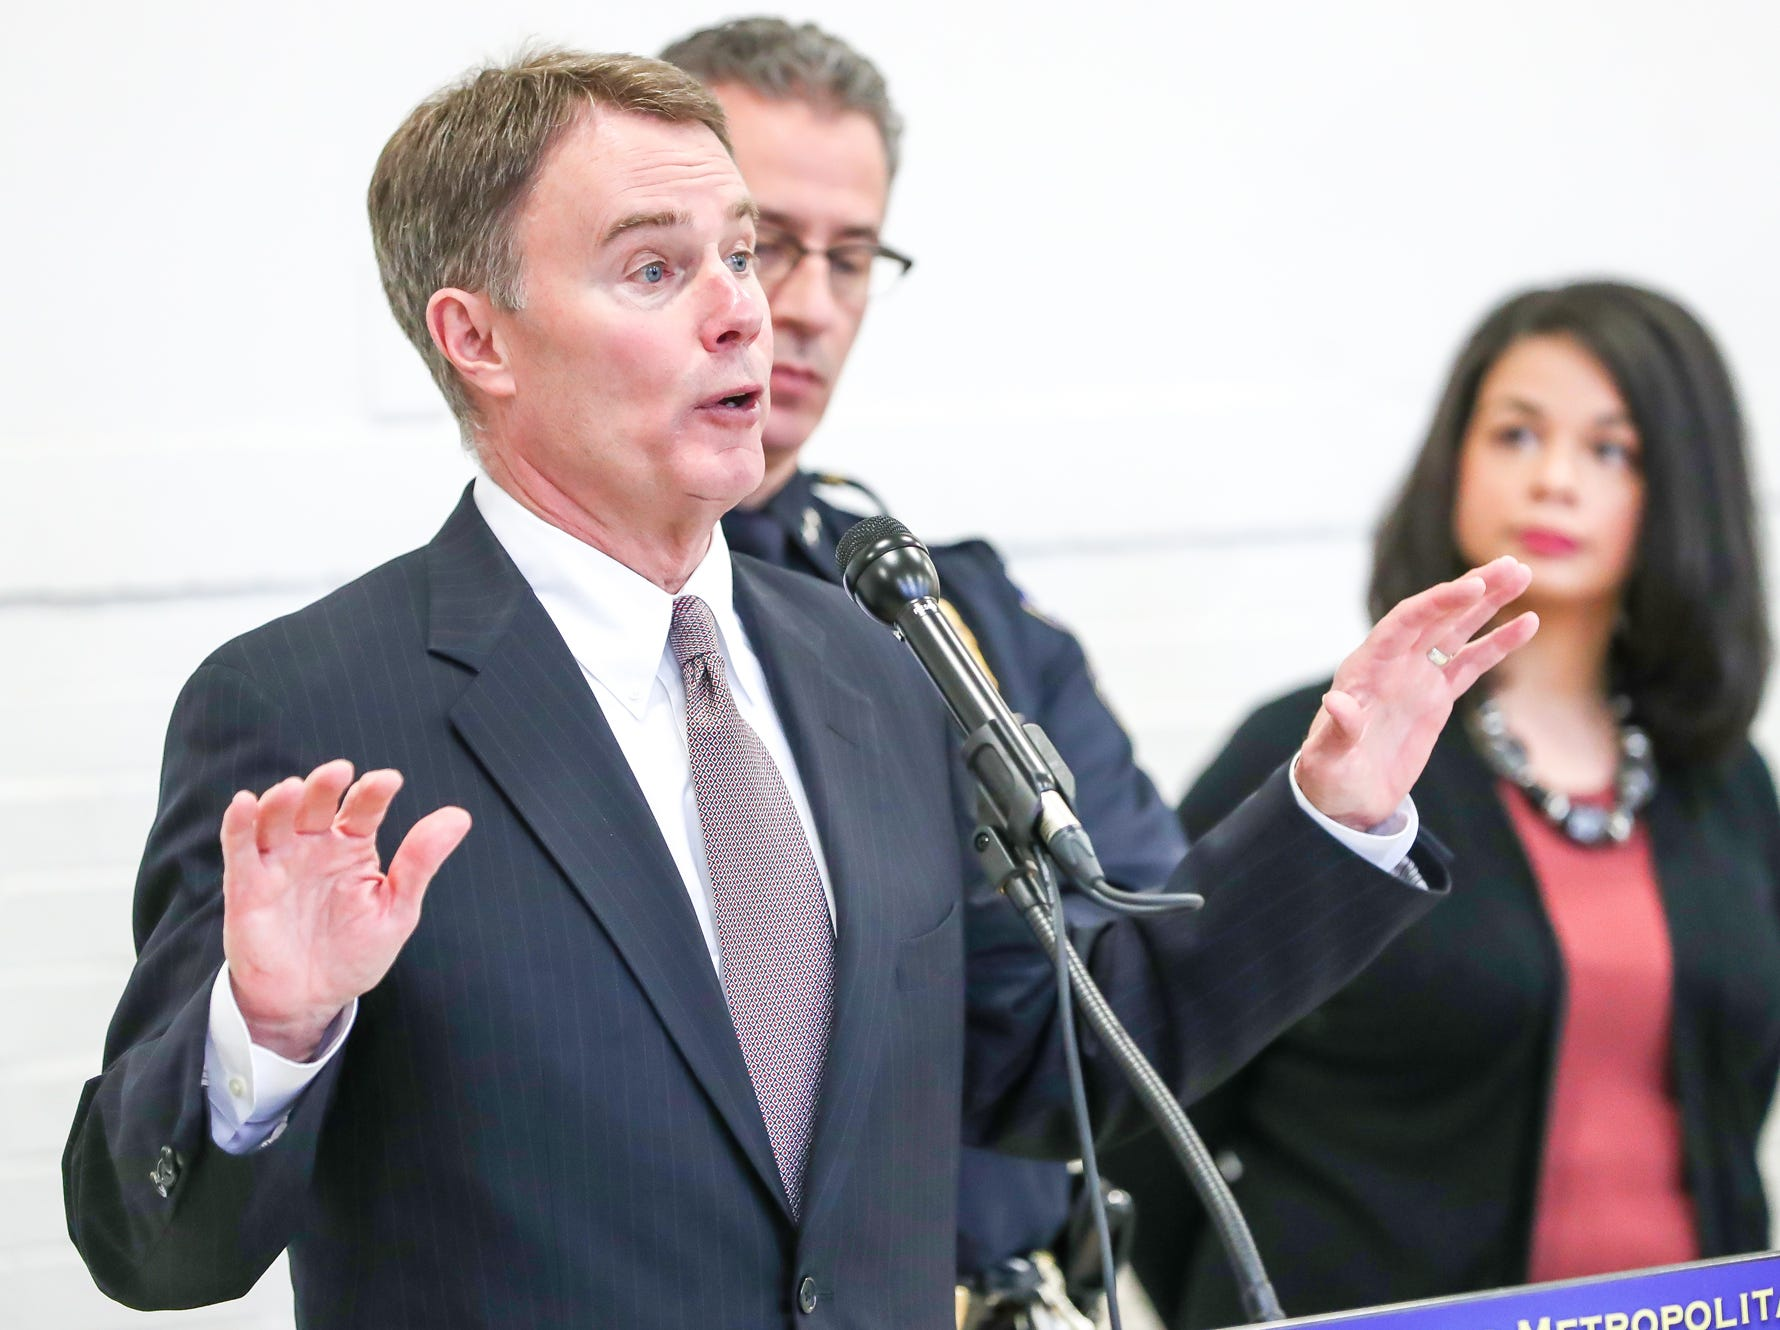 """During a press conference on Monday, at the Edna Martin Christian Center addressing a new body worn camera program, Indianapolis Mayor Joe Hogsett notes that the community will take part in the assessment. """"In this way, we can build the trust, the transparency and the tools to implement a quality body camera program."""